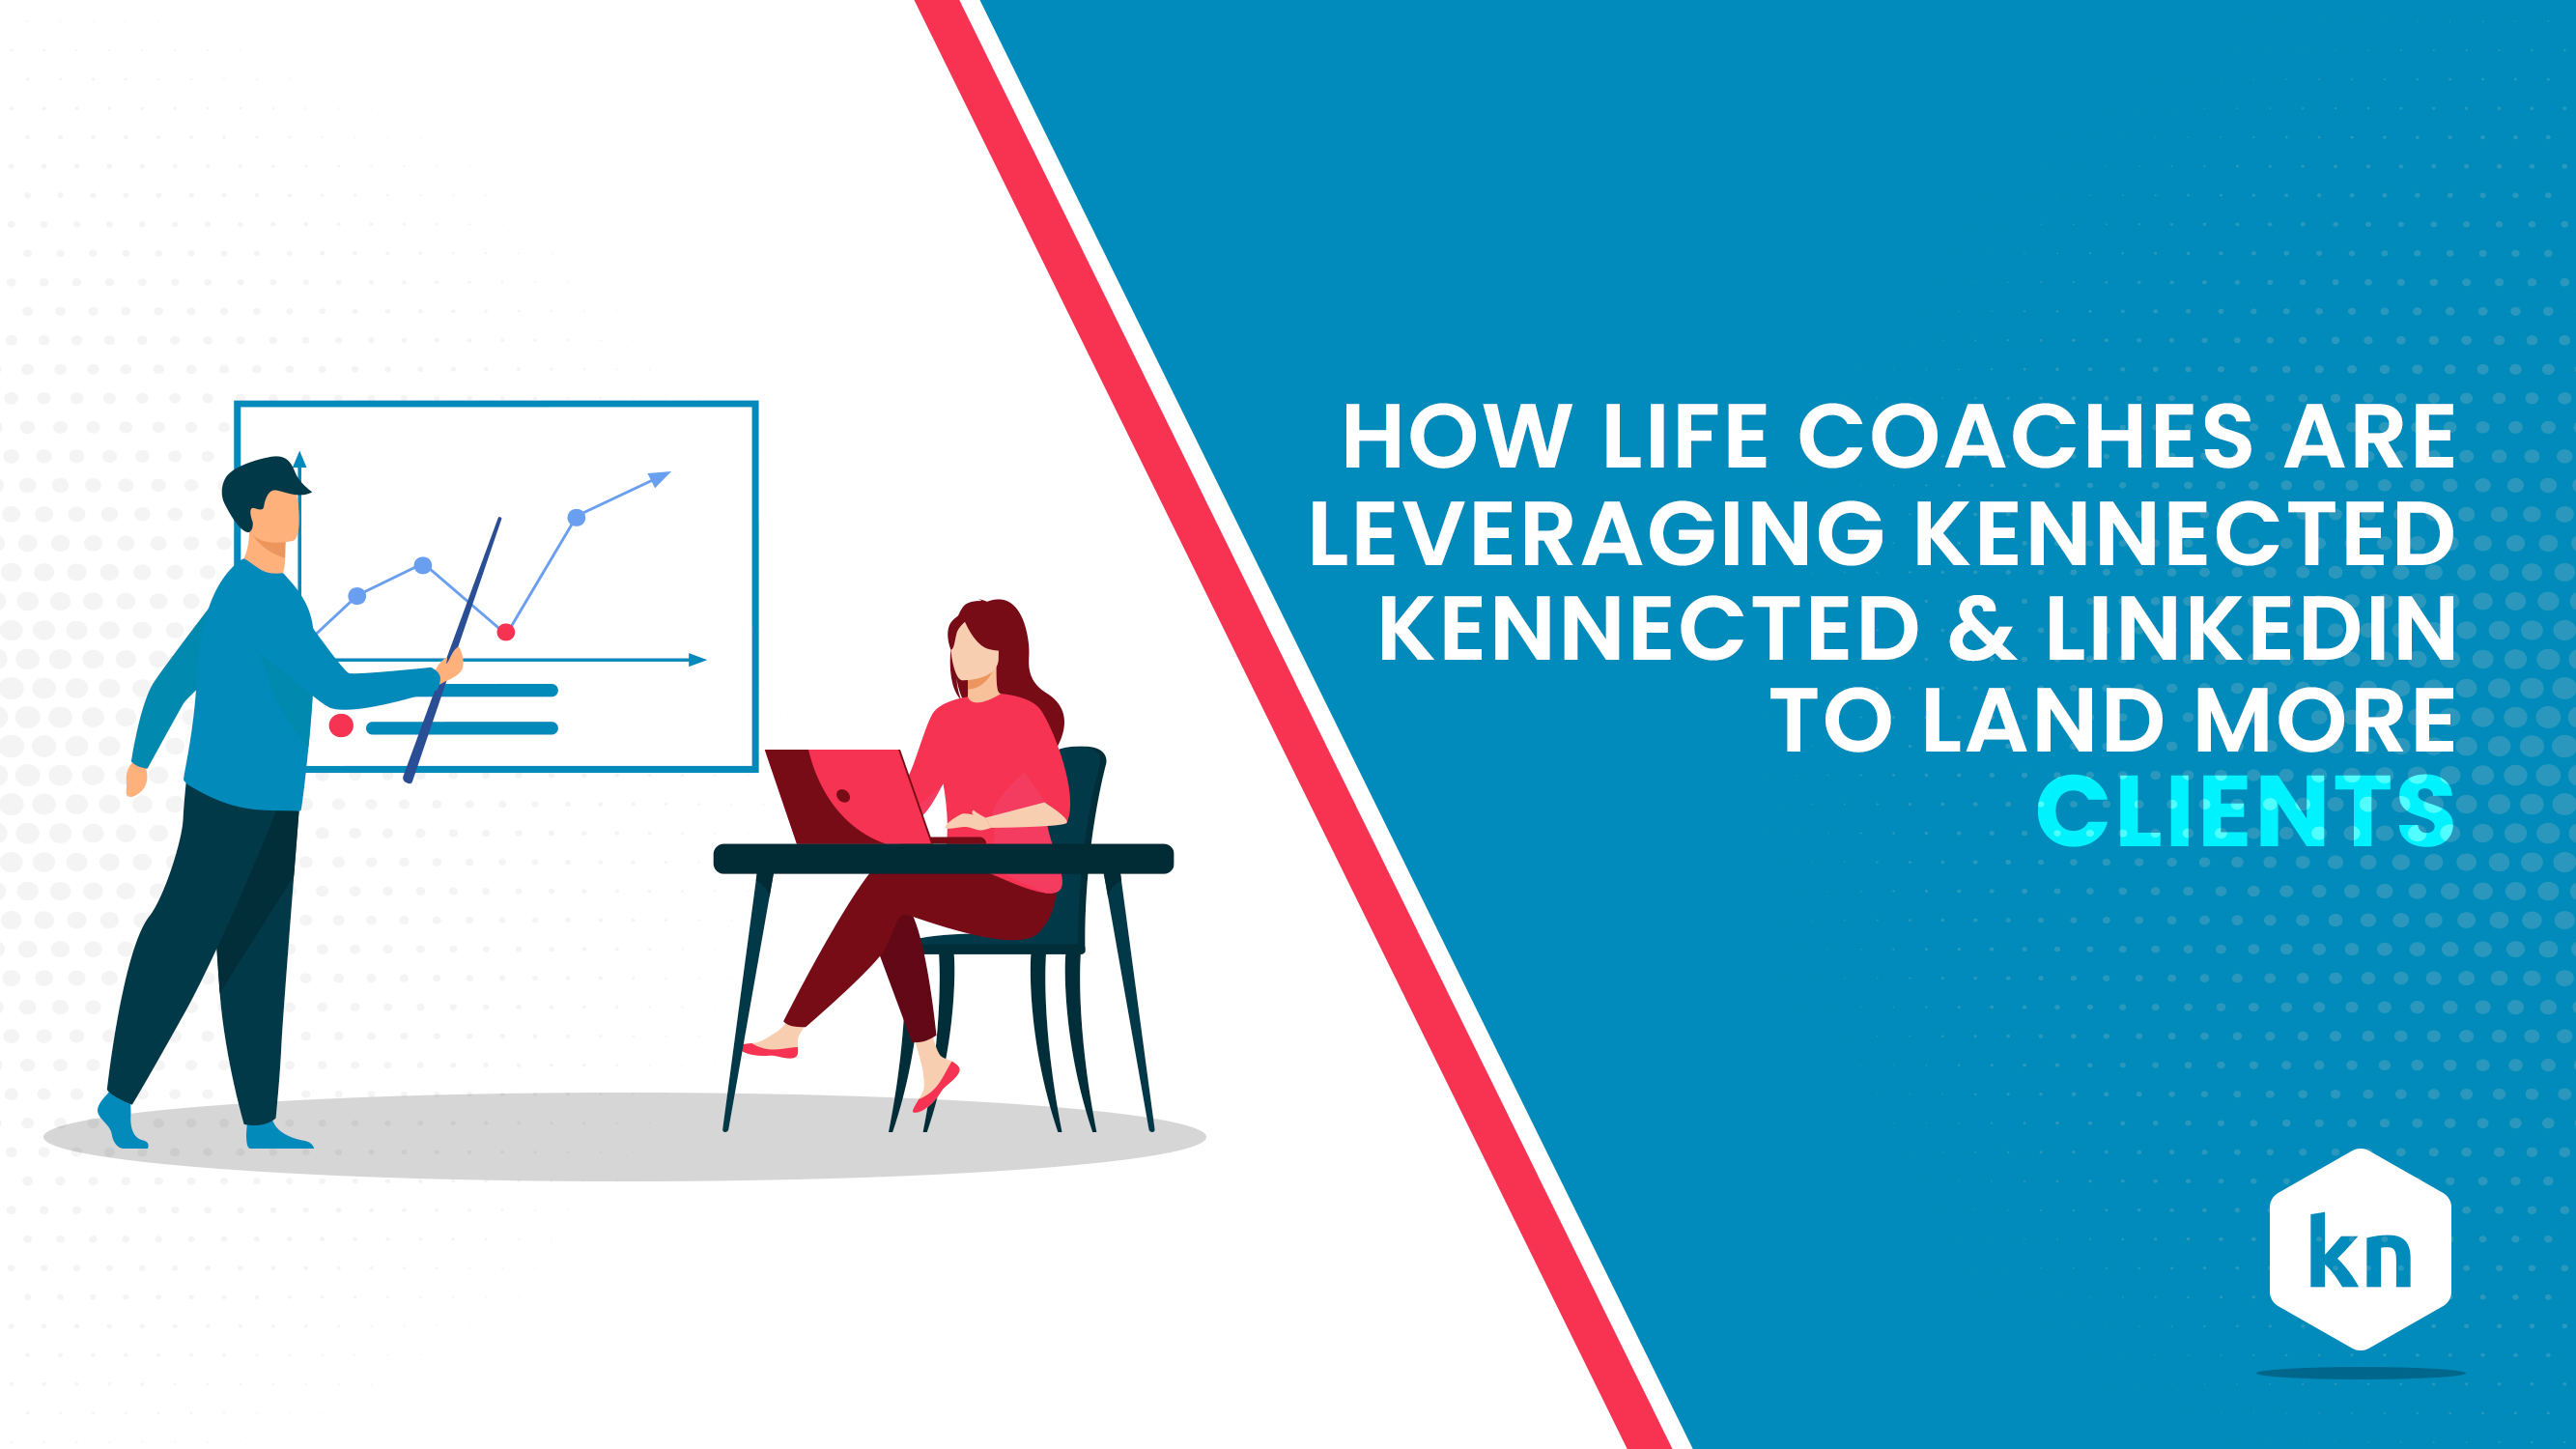 How Life Coaches Are Leveraging Kennected & LinkedIn To Land More Clients